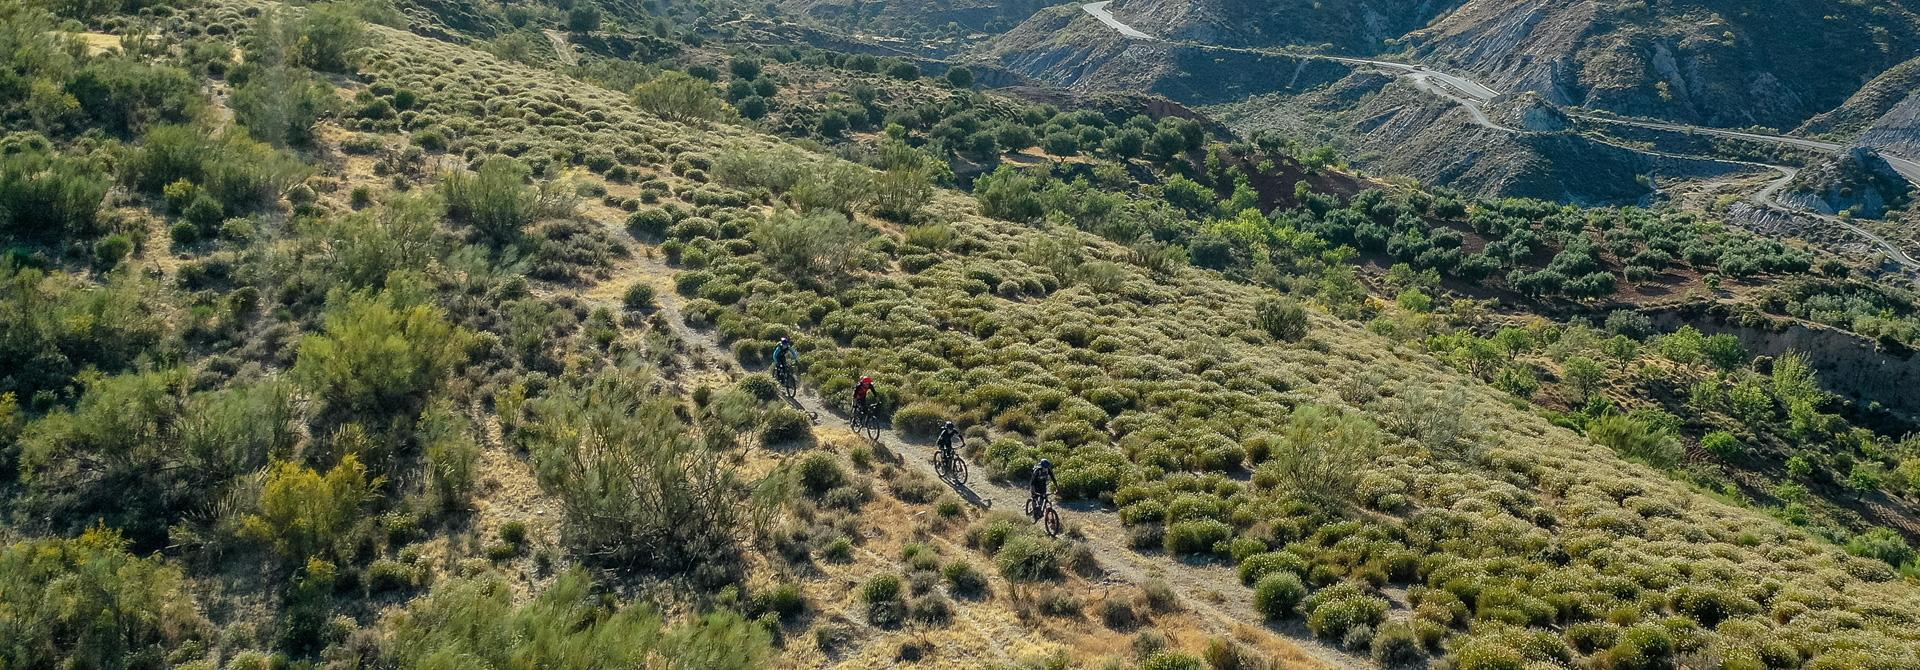 Bespoke mountain biking trips